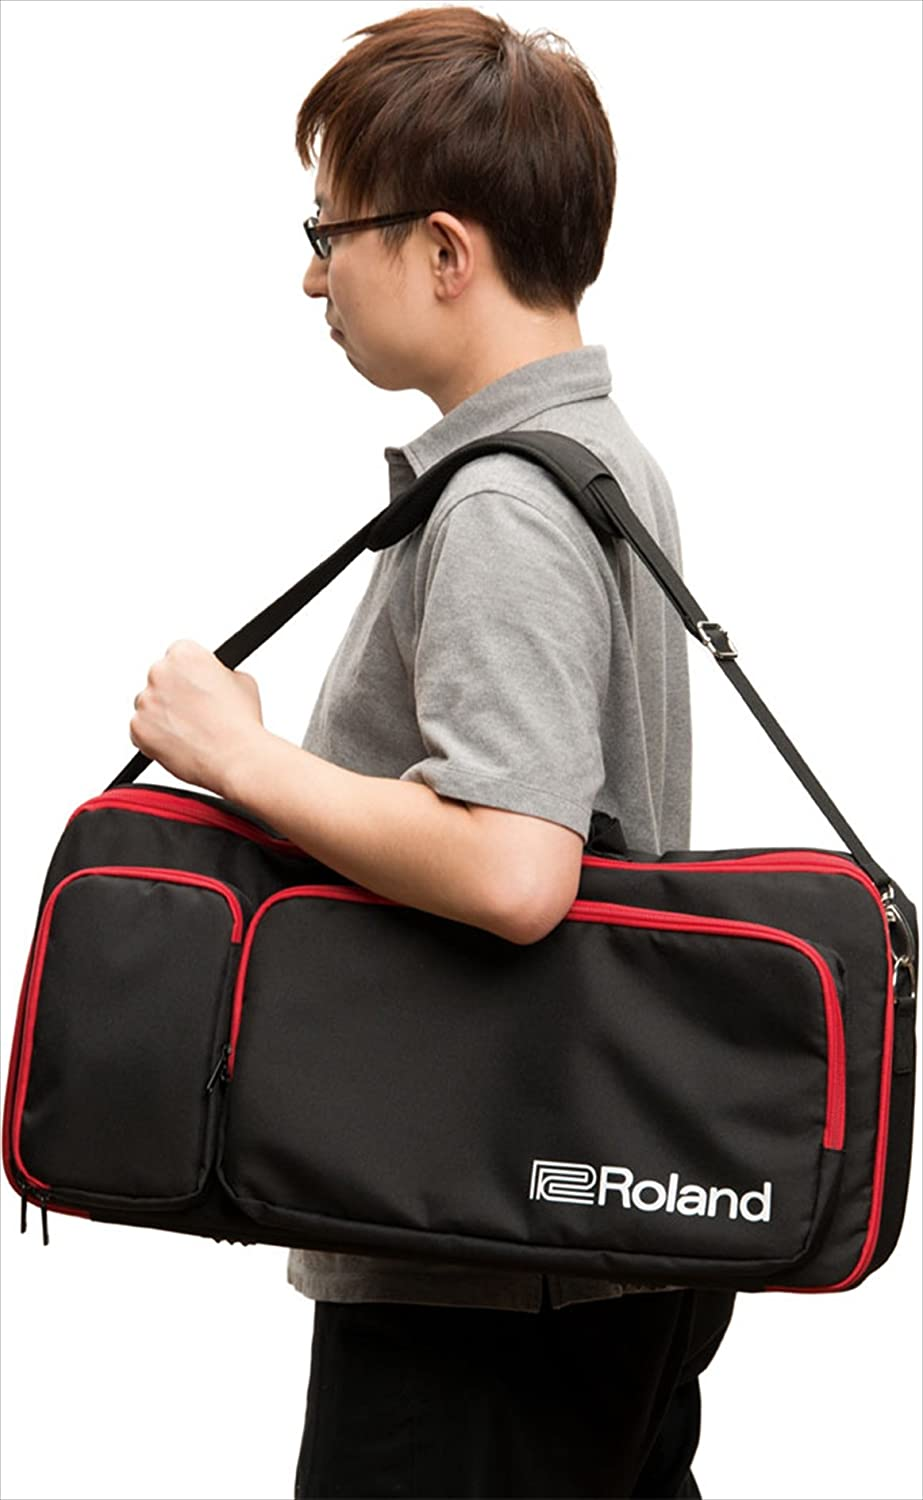 CBJDXI Official Carrying Bag For JD Xi By Roland Amazoncouk Musical Instruments